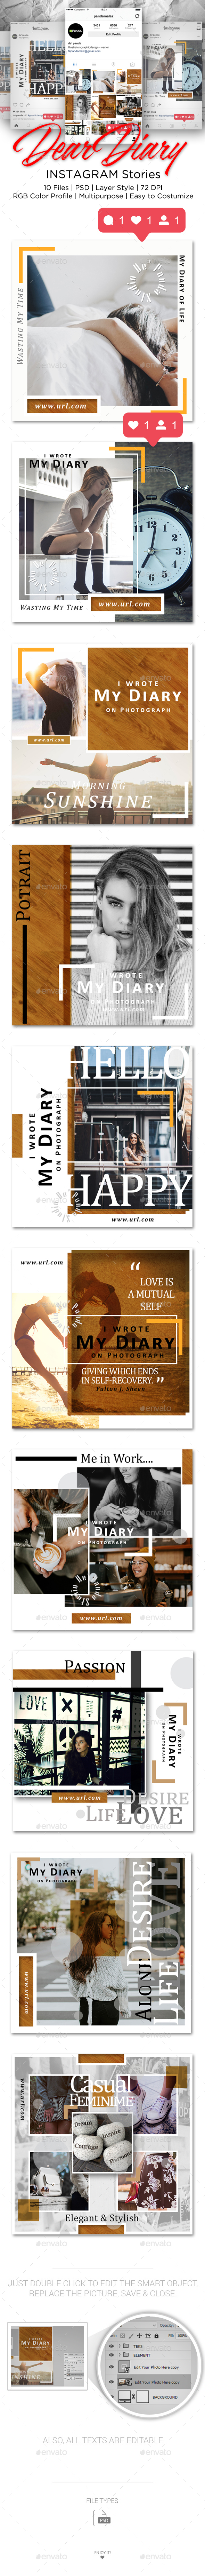 GraphicRiver PSD Dear Diary Instagram Stories 20868176